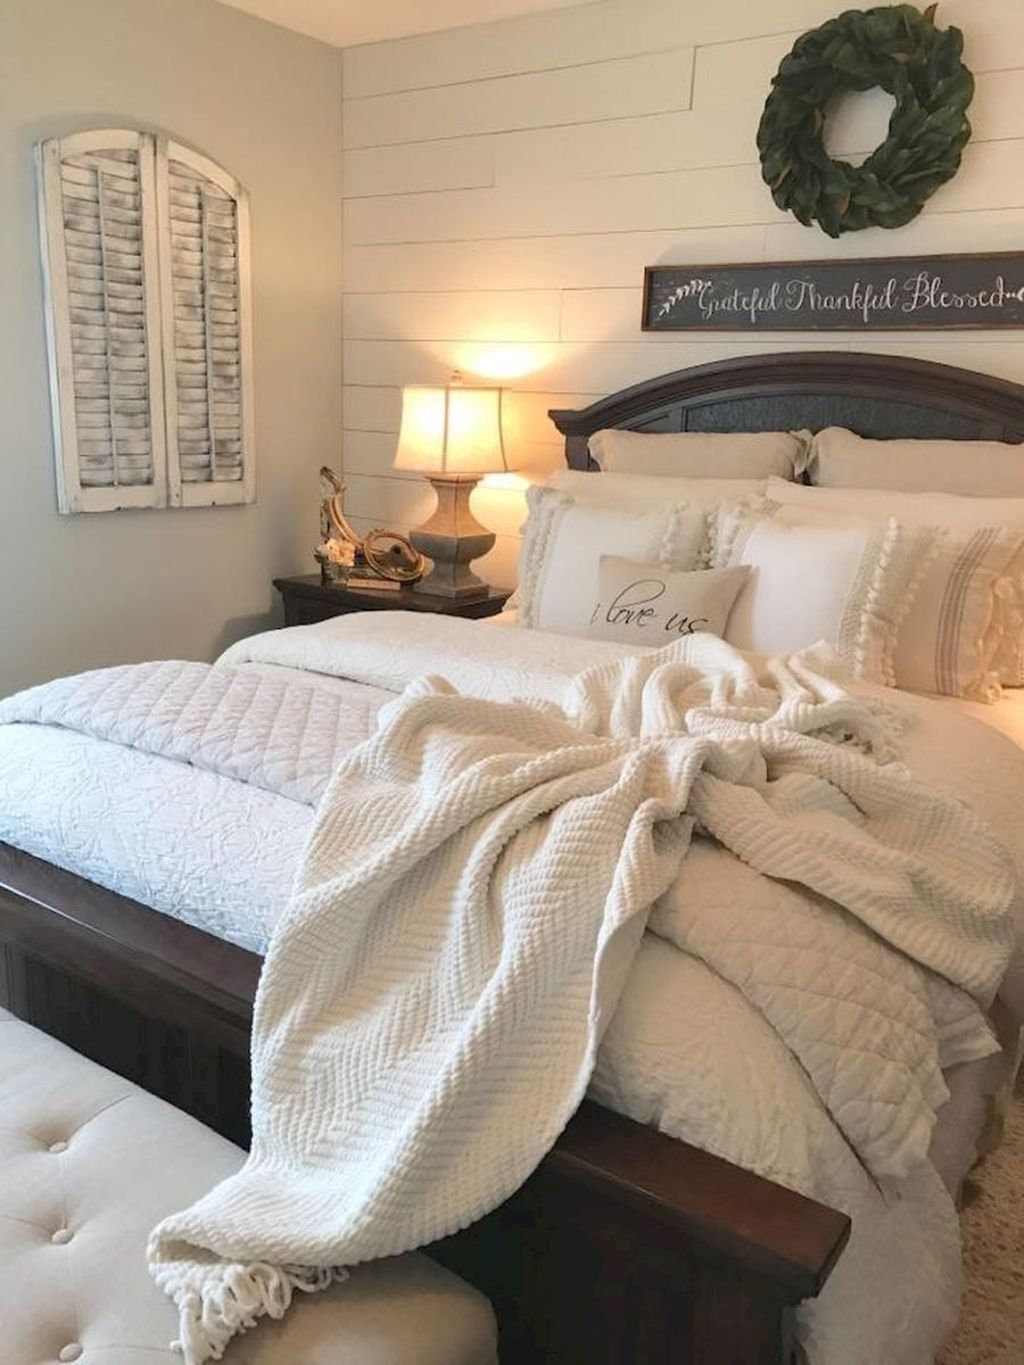 Relaxing Rustic Farmhouse Master Bedroom Ideas 48 Home Bedroom Farmhouse Style Master Bedroom Farmhouse Bedroom Decor